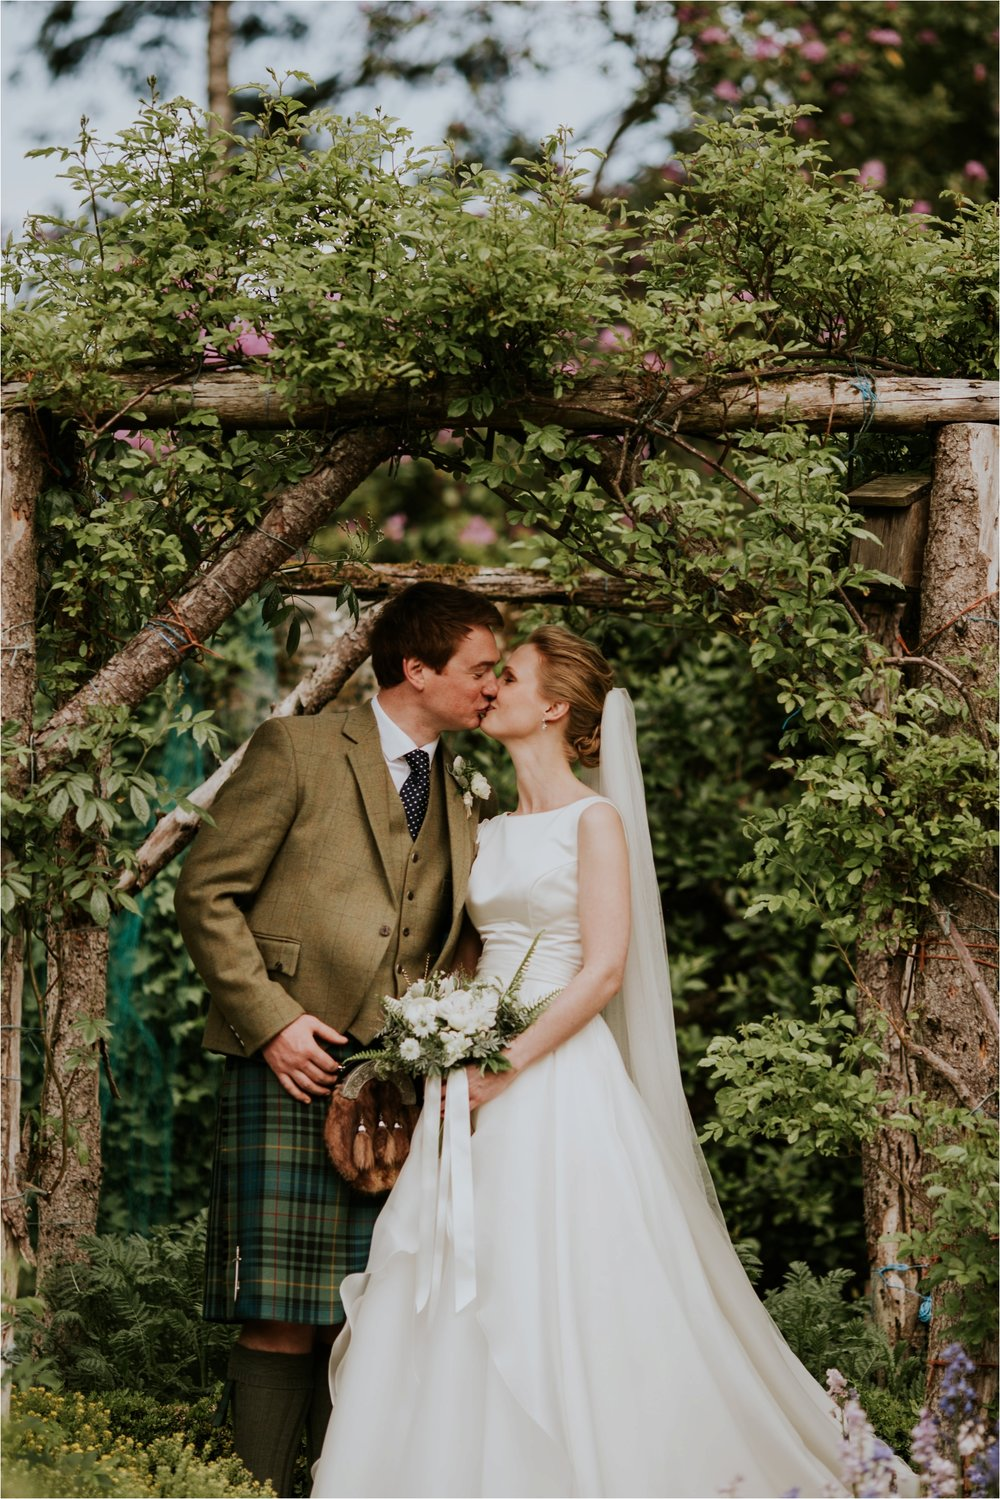 Photography 78 - Scottish Wedding Photographer - Araminta & Jamie_0056.jpg